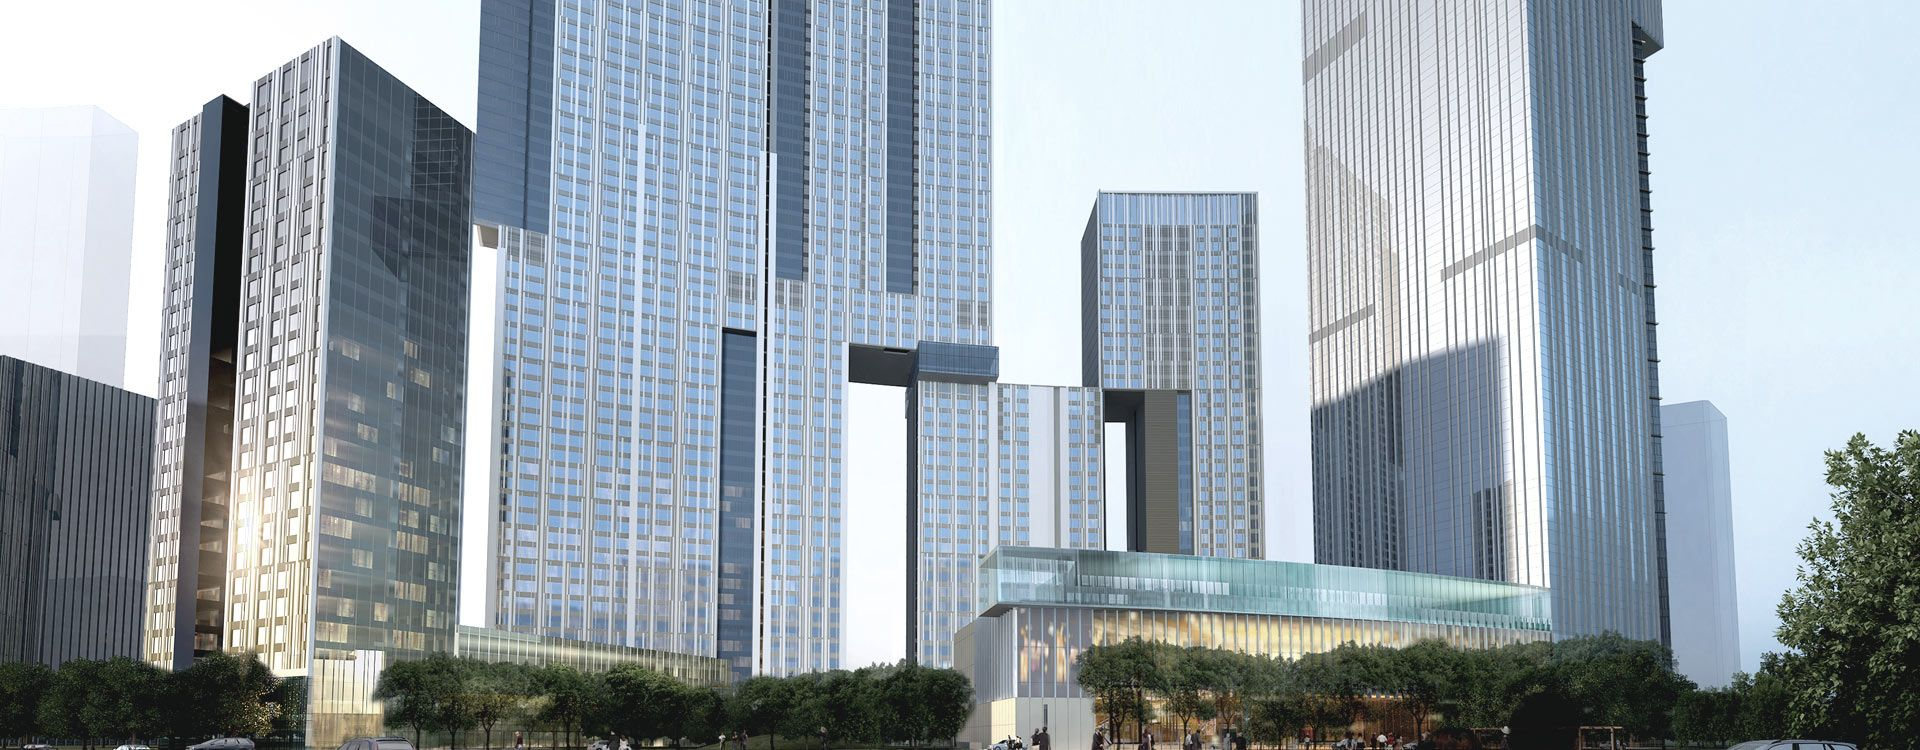 bnr-Langham-Hotel-Tower-East-Dalian-China_High-Rise